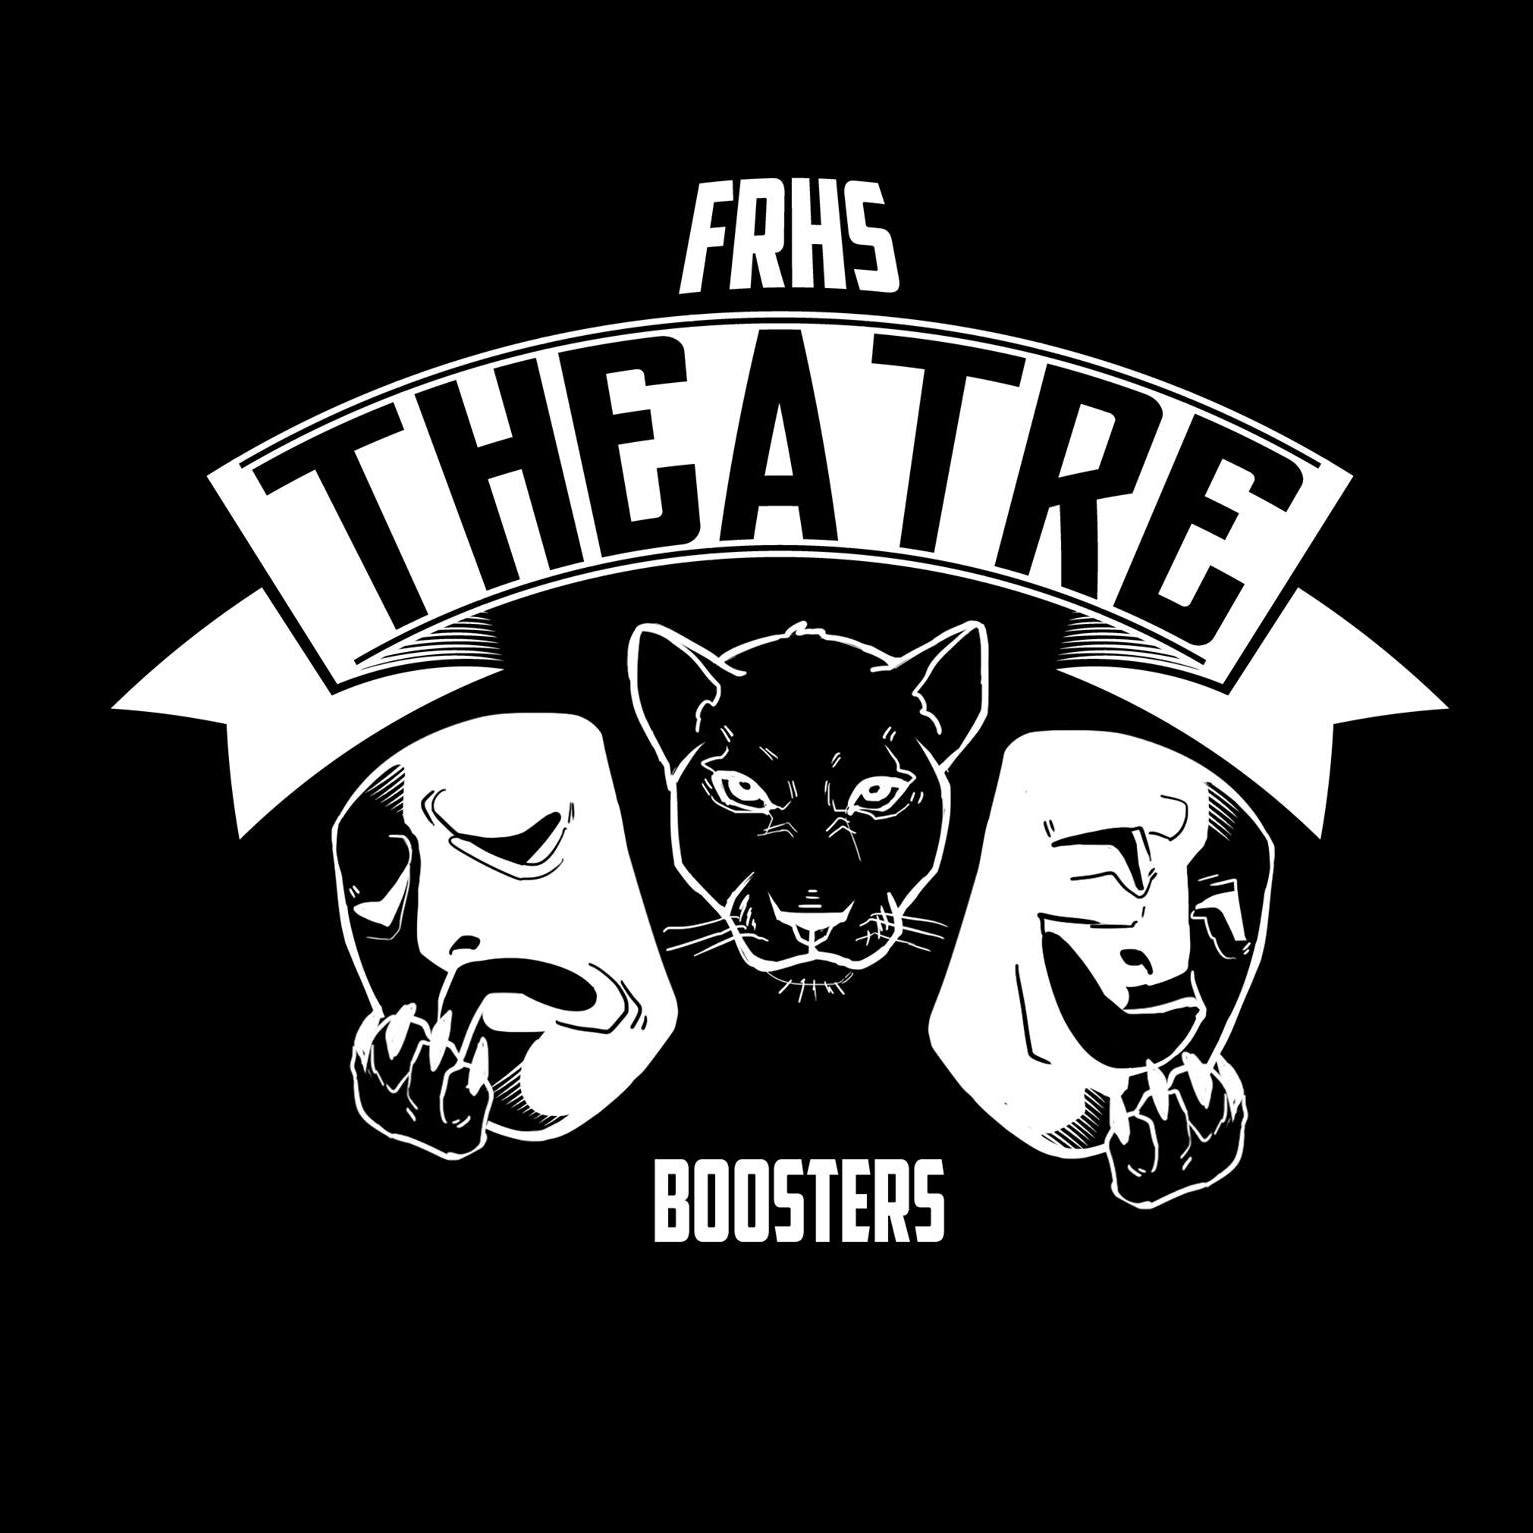 FRHS Theatre Booster